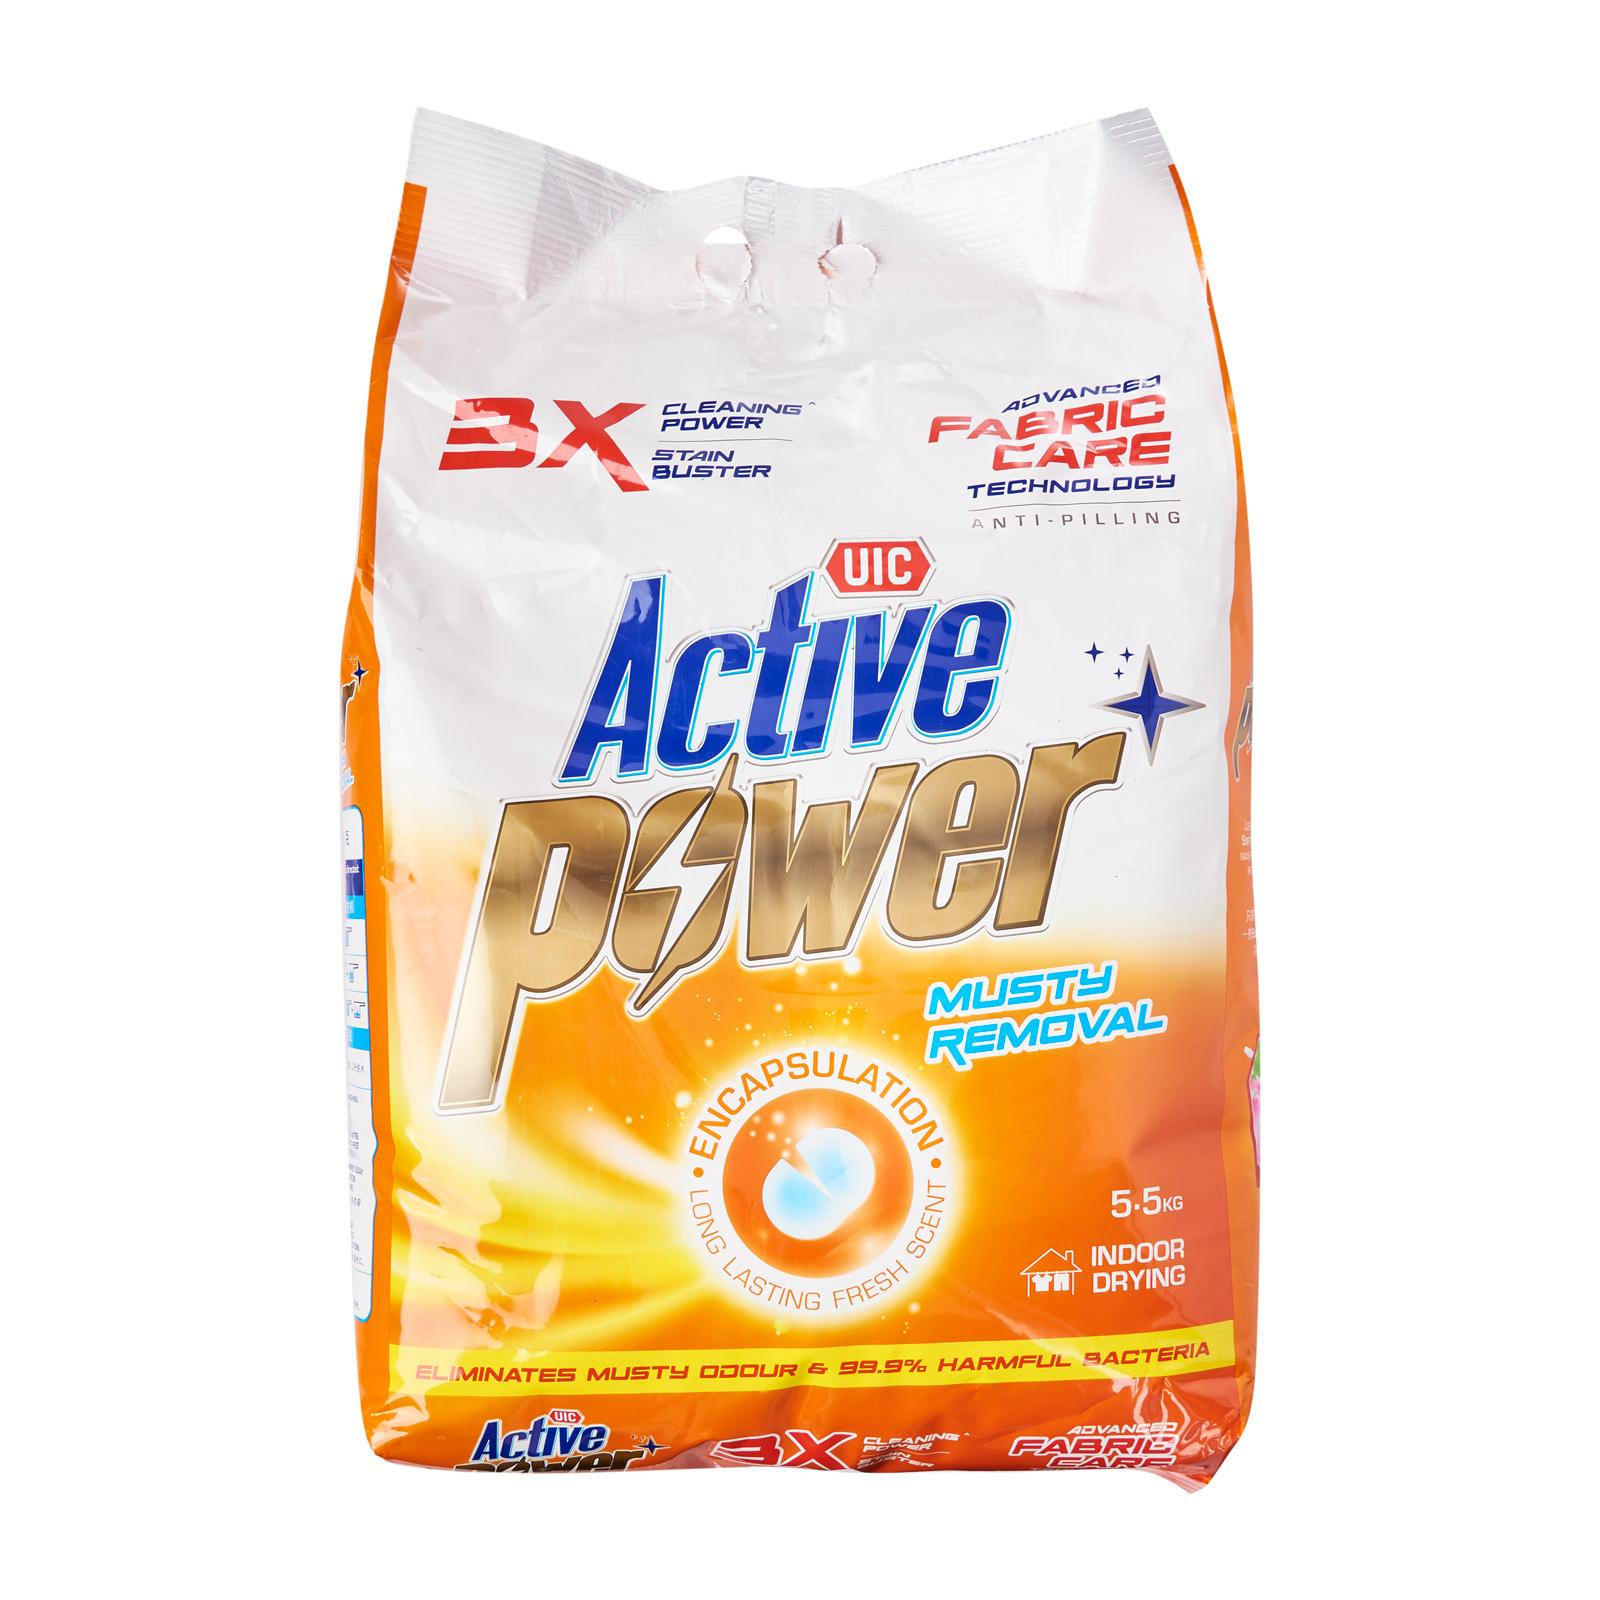 UIC Active Power+ Musty Removal Powder Laundry Detergent 5.5KG